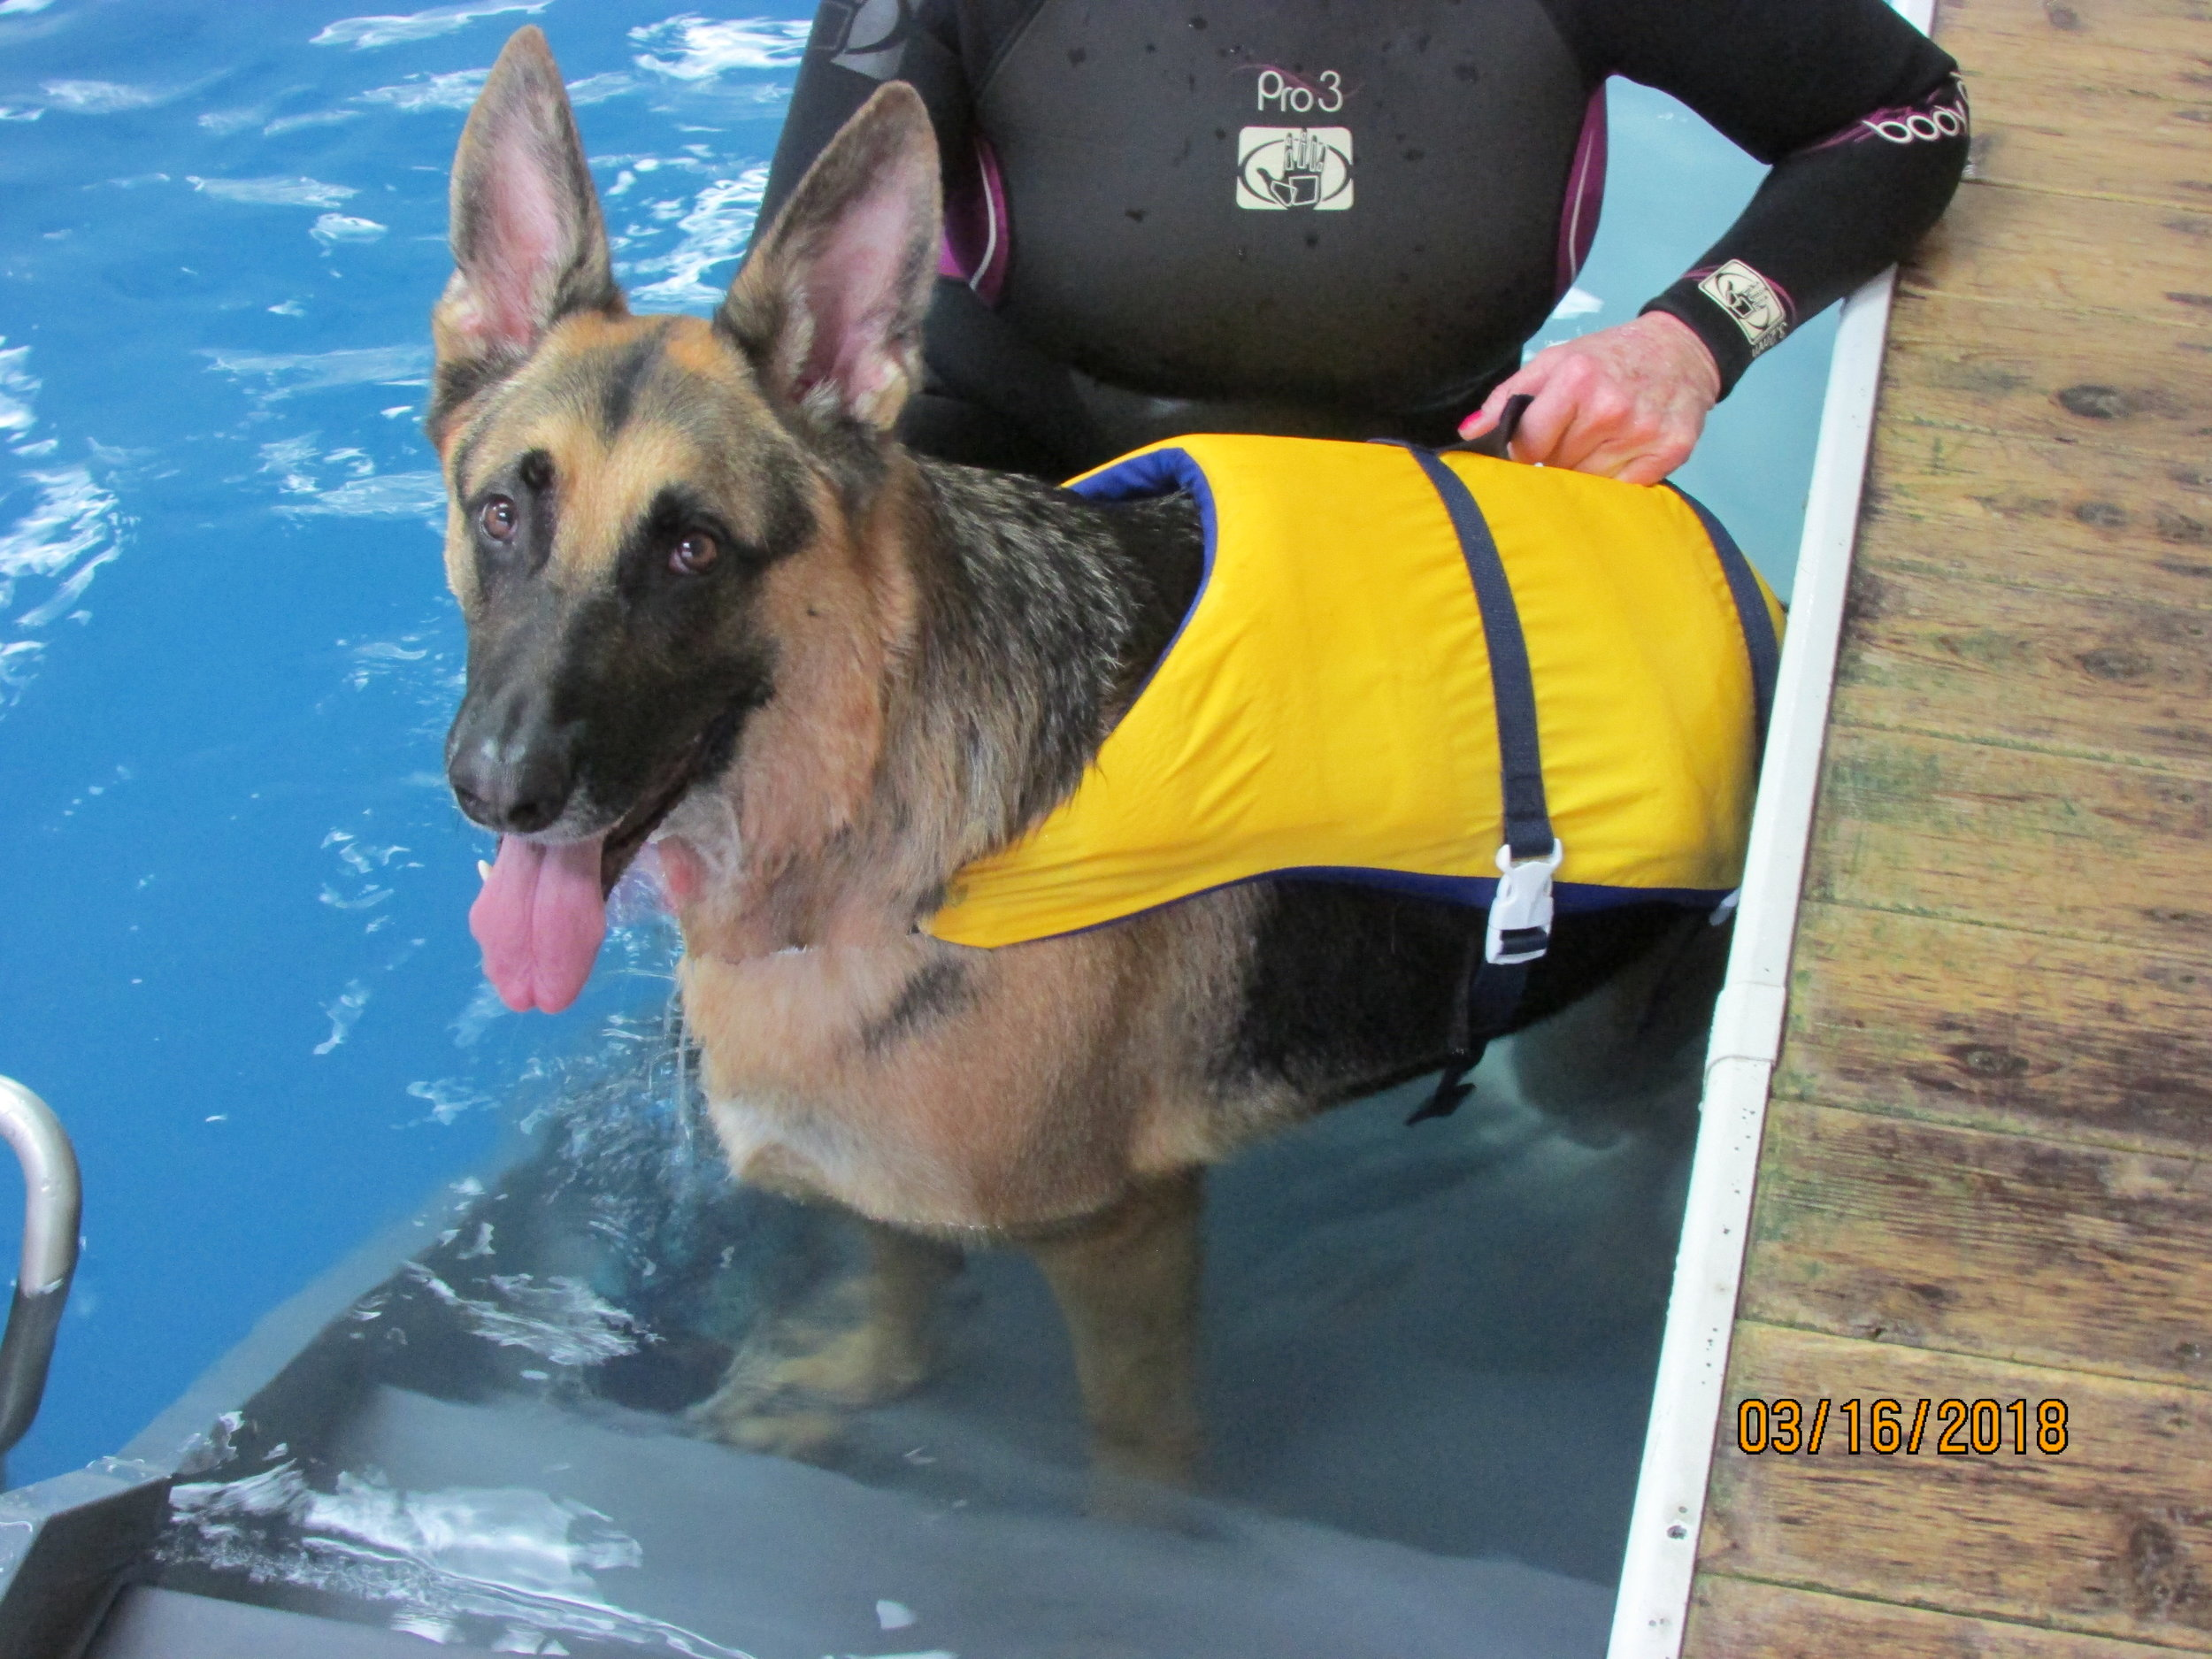 Jackie swimming with her dog Bode